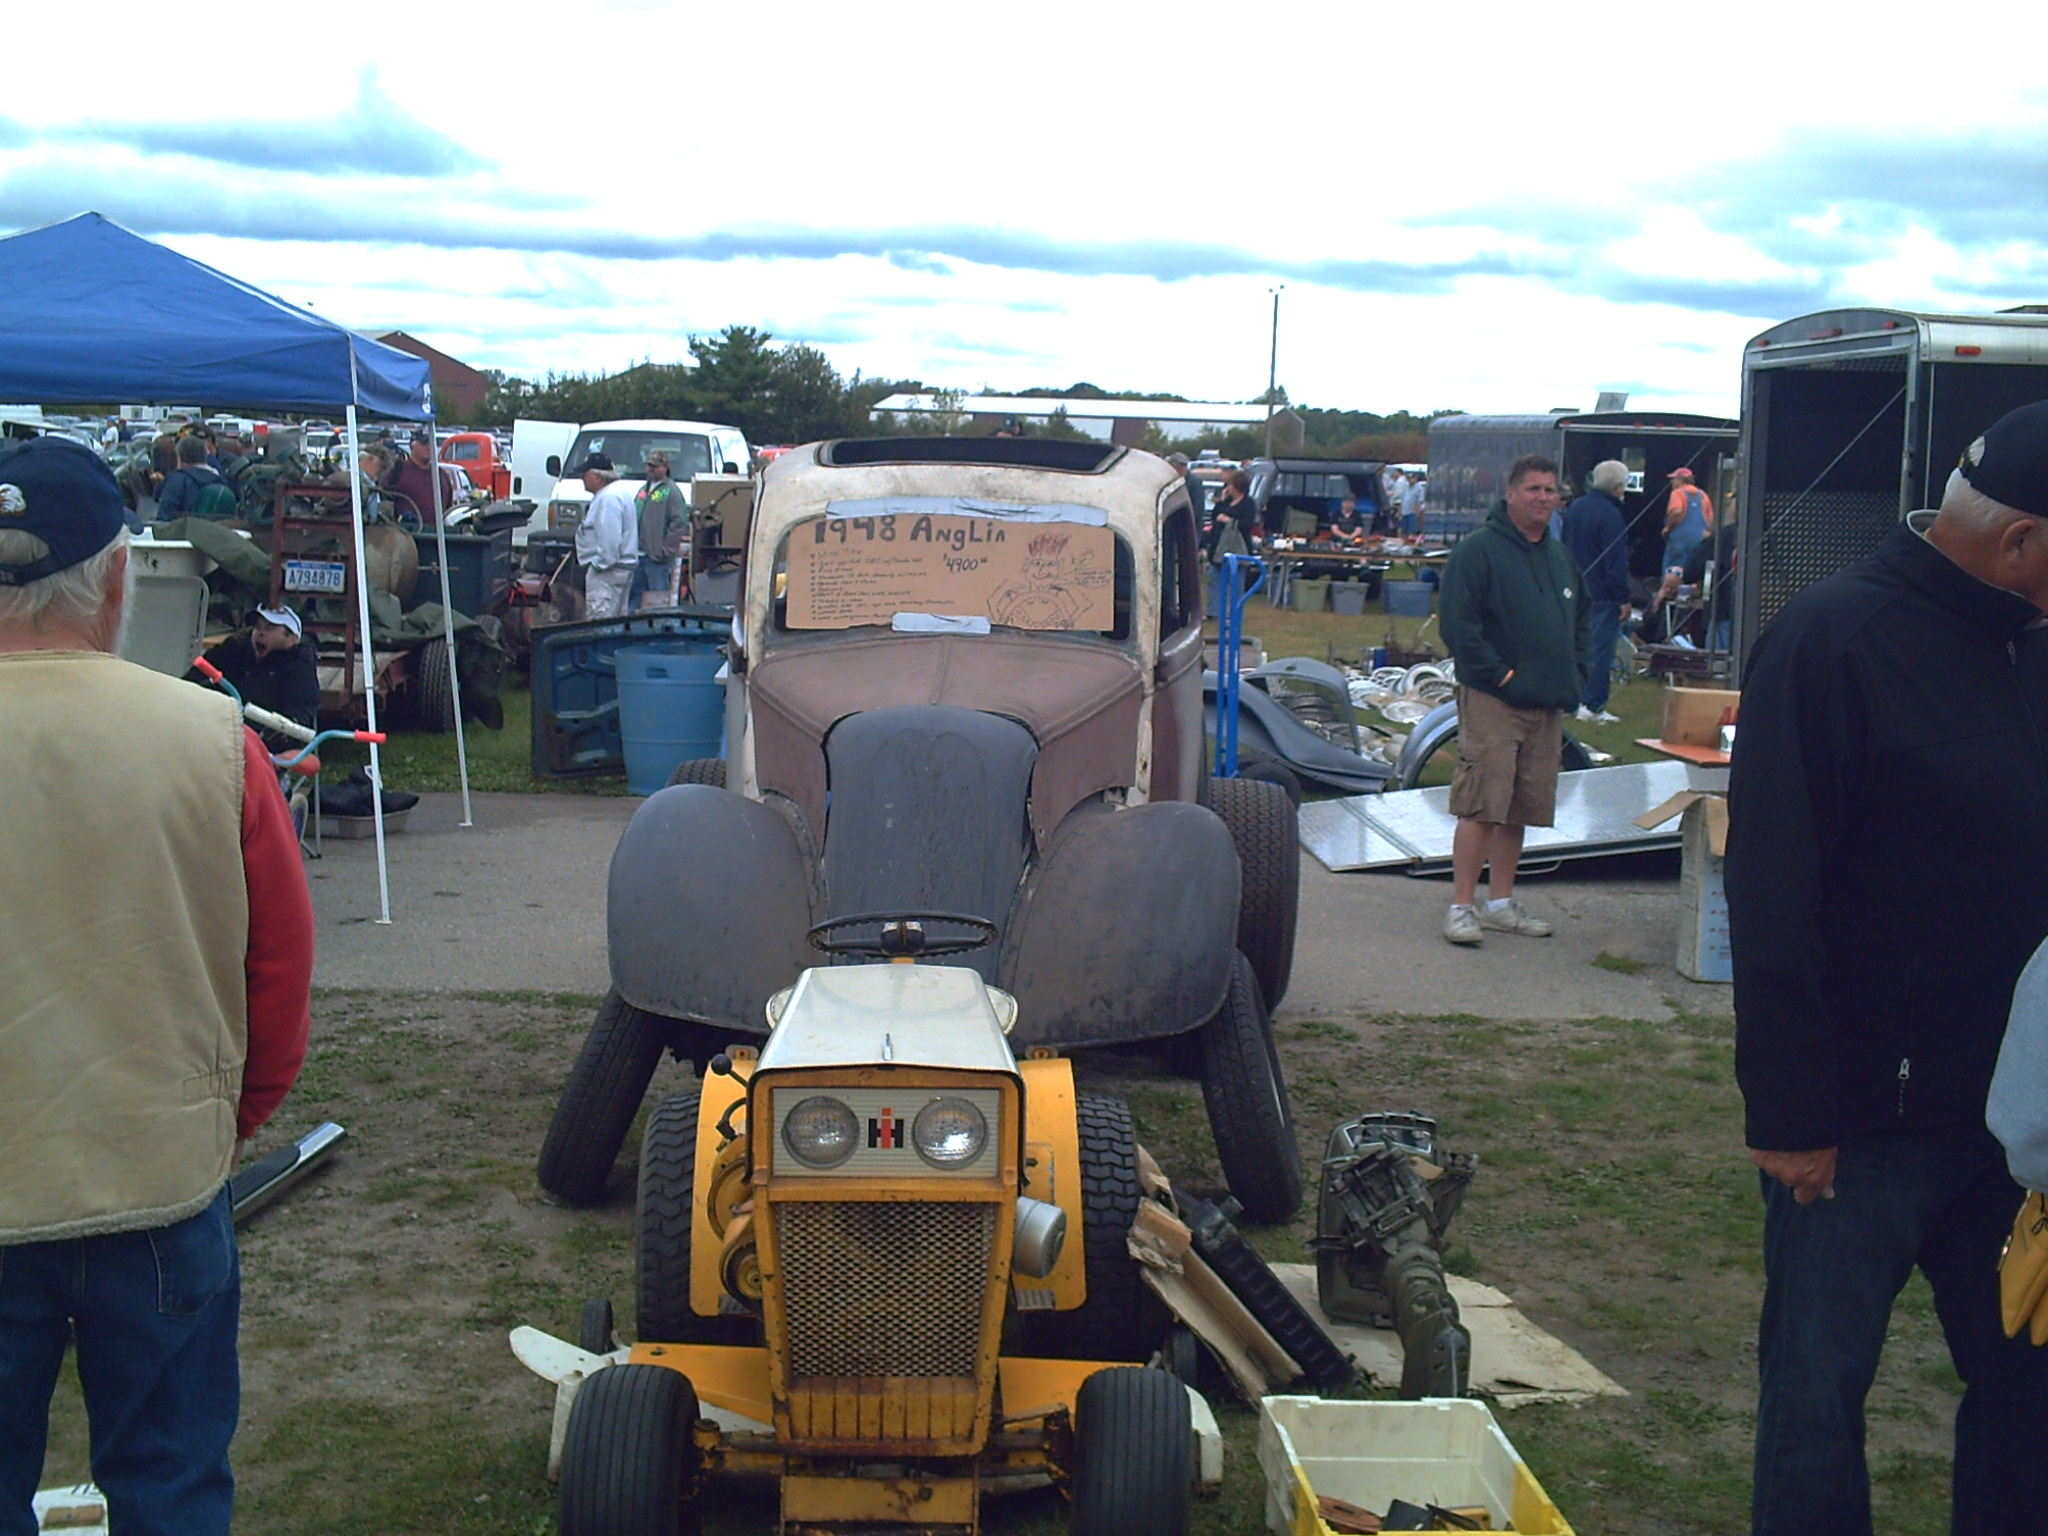 Click image for larger version  Name:Midland fall meet (14).JPG Views:56 Size:780.9 KB ID:85090